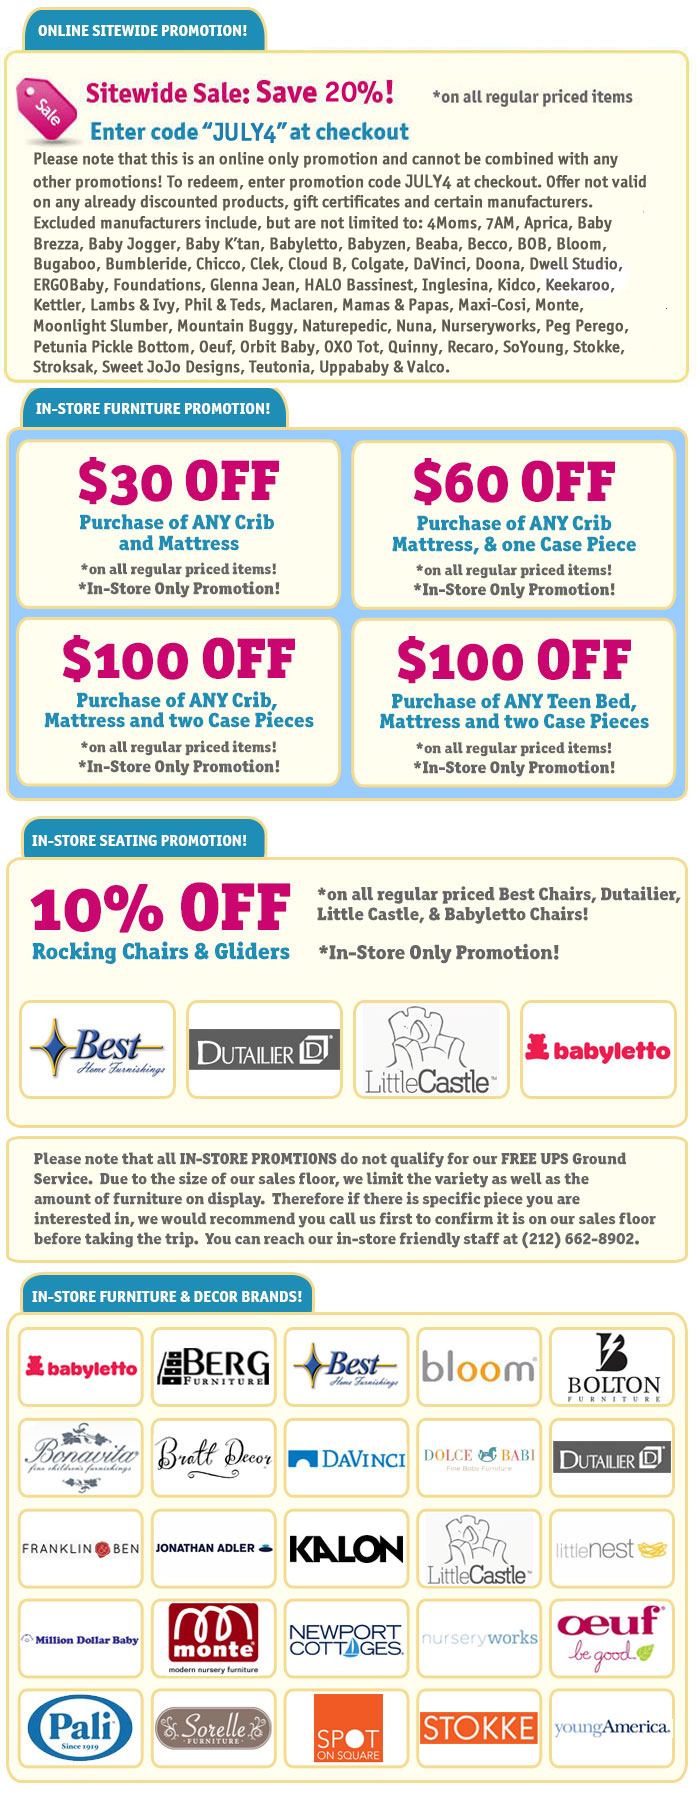 Sitewide Sale! Enter coupon code JULY4 at checkout to save 20% on your Albee Baby Purchase